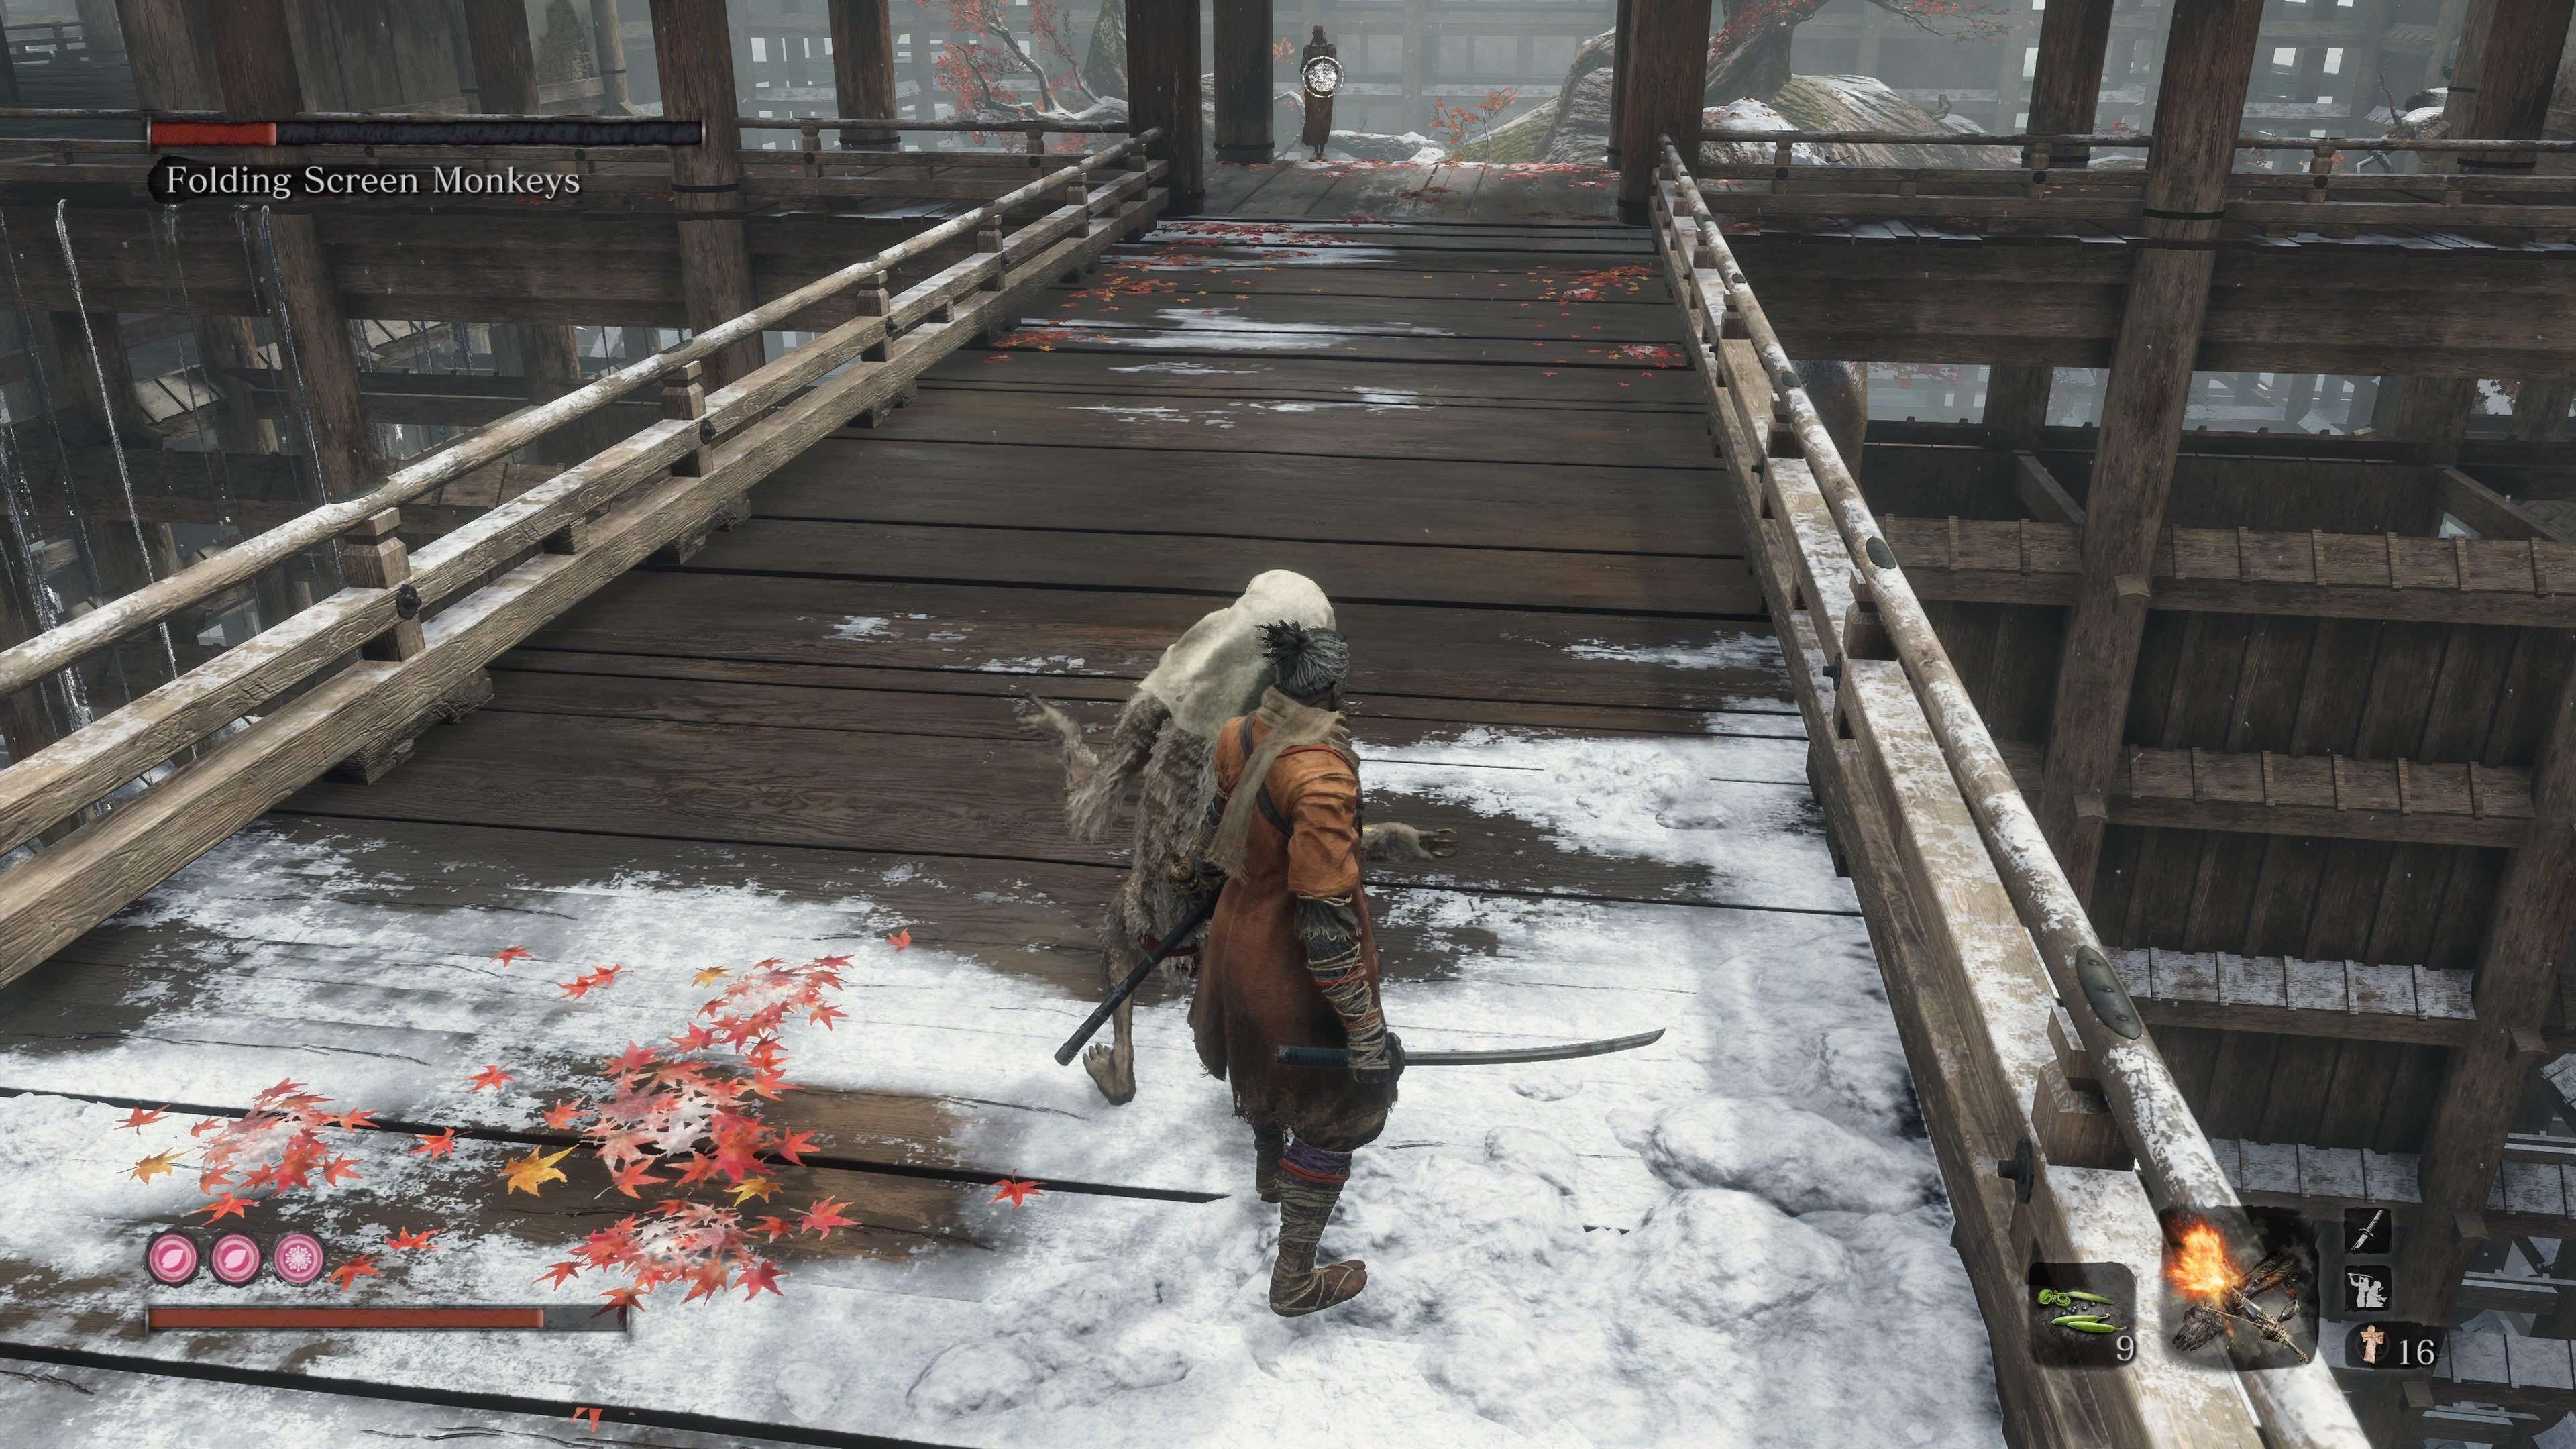 How to beat Folding Screen Monkeys in Sekiro: Shadows Die Twice